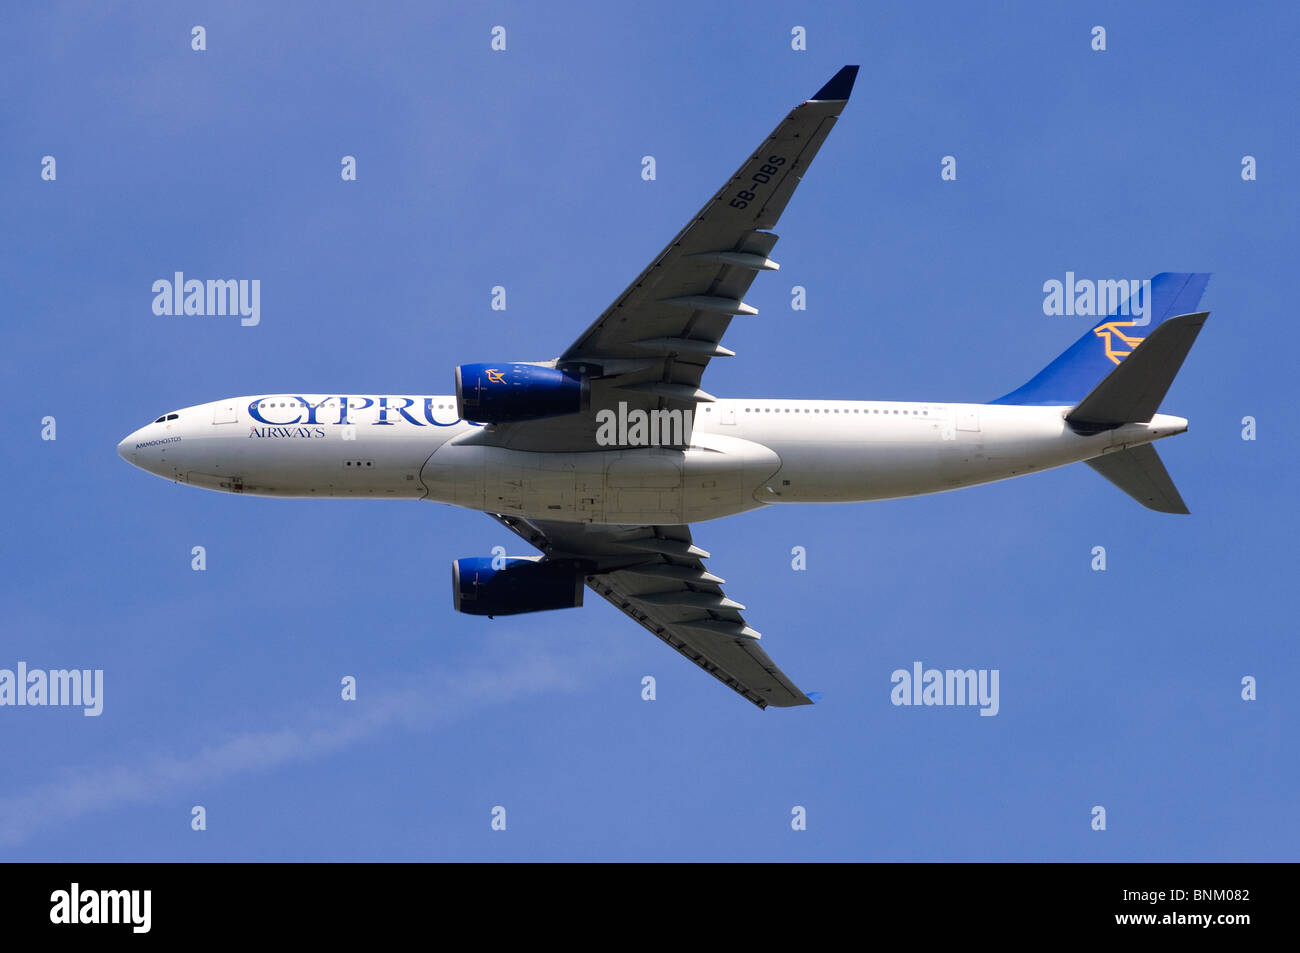 Airbus A330 operated by Cyprus Airways climbing out from take off at London Heathrow Airport, UK. - Stock Image